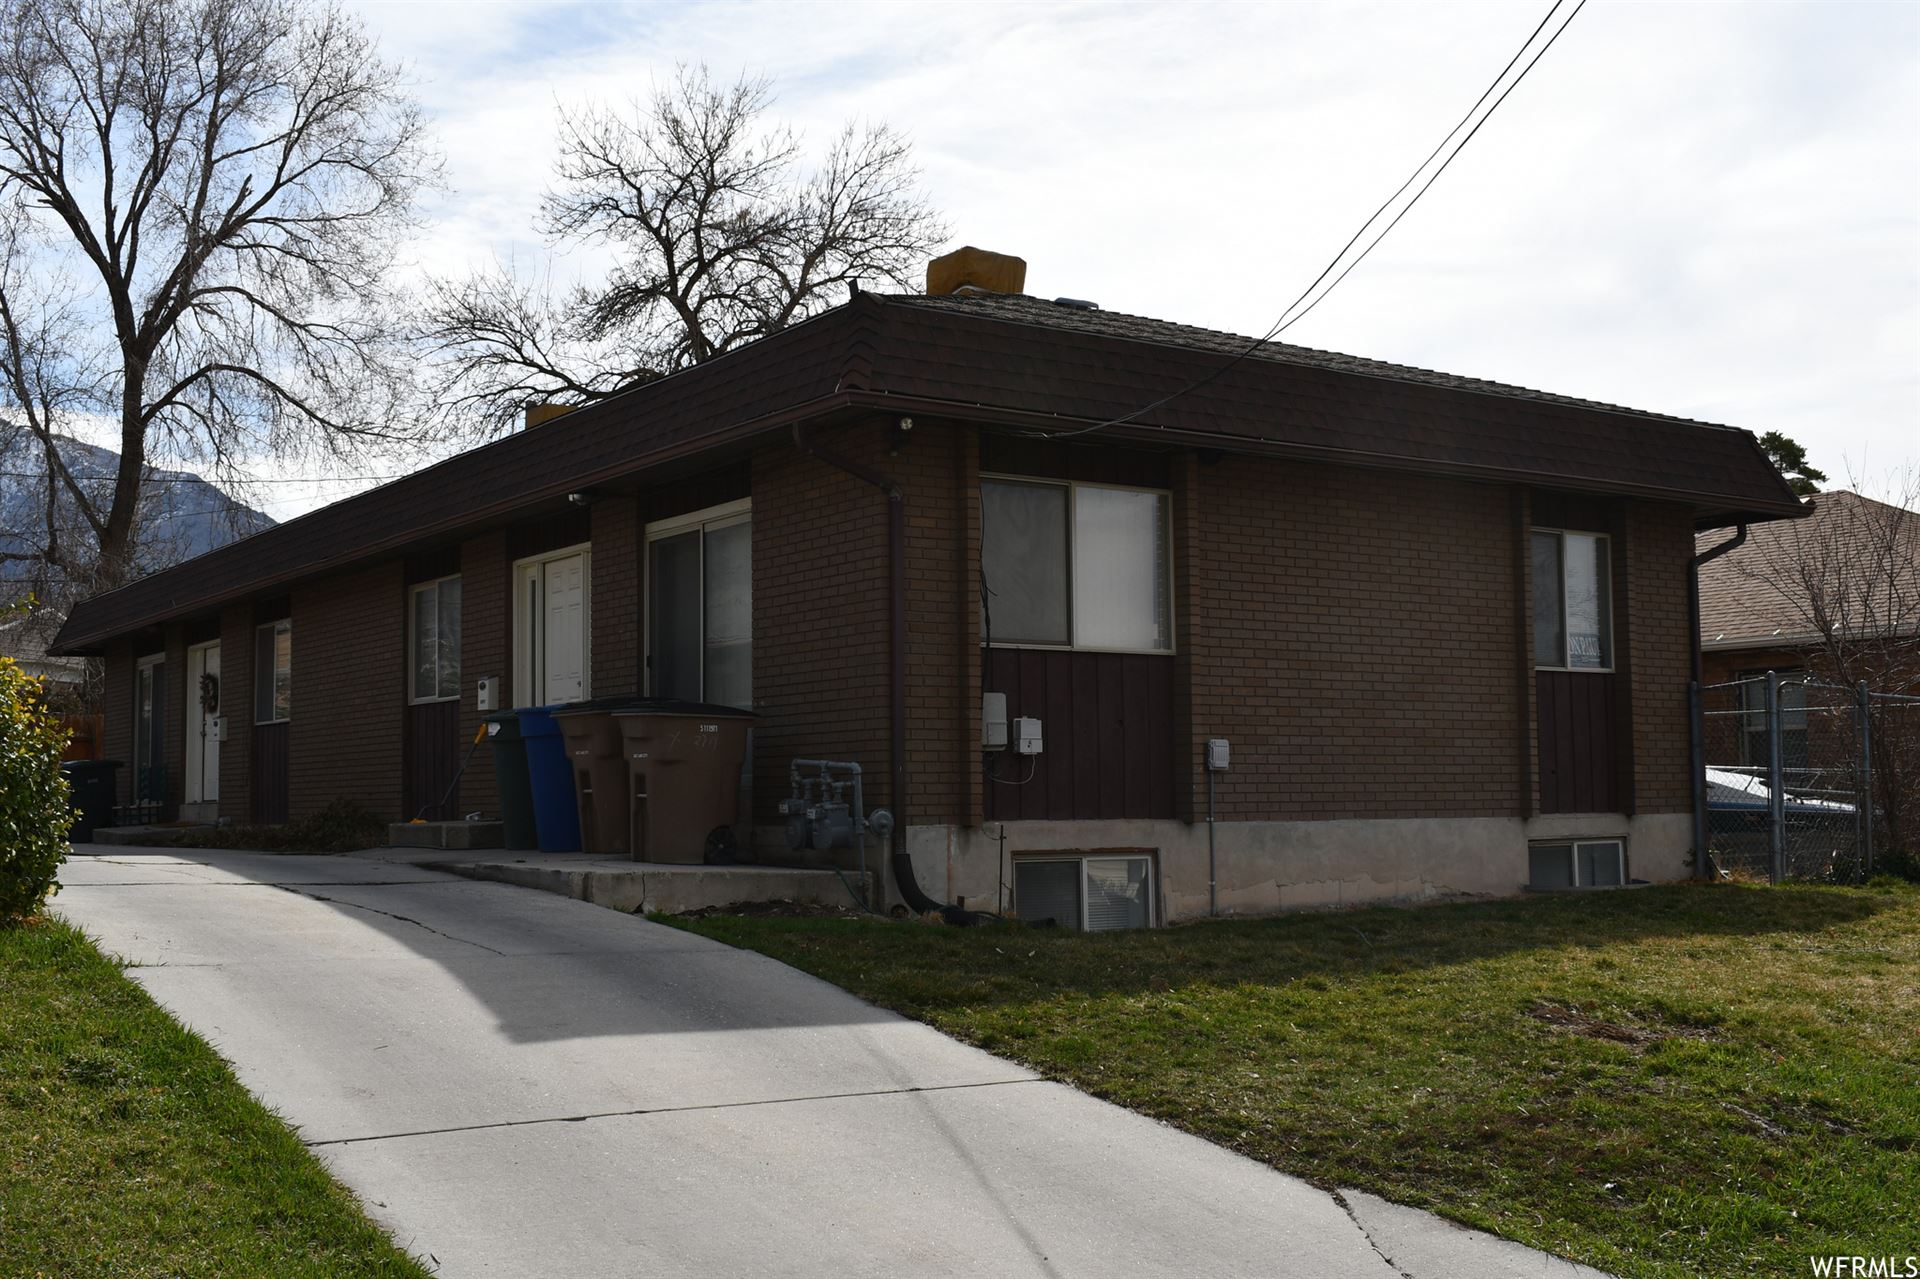 Photo of 2717 S CONNOR ST, Salt Lake City, UT 84109 (MLS # 1730388)